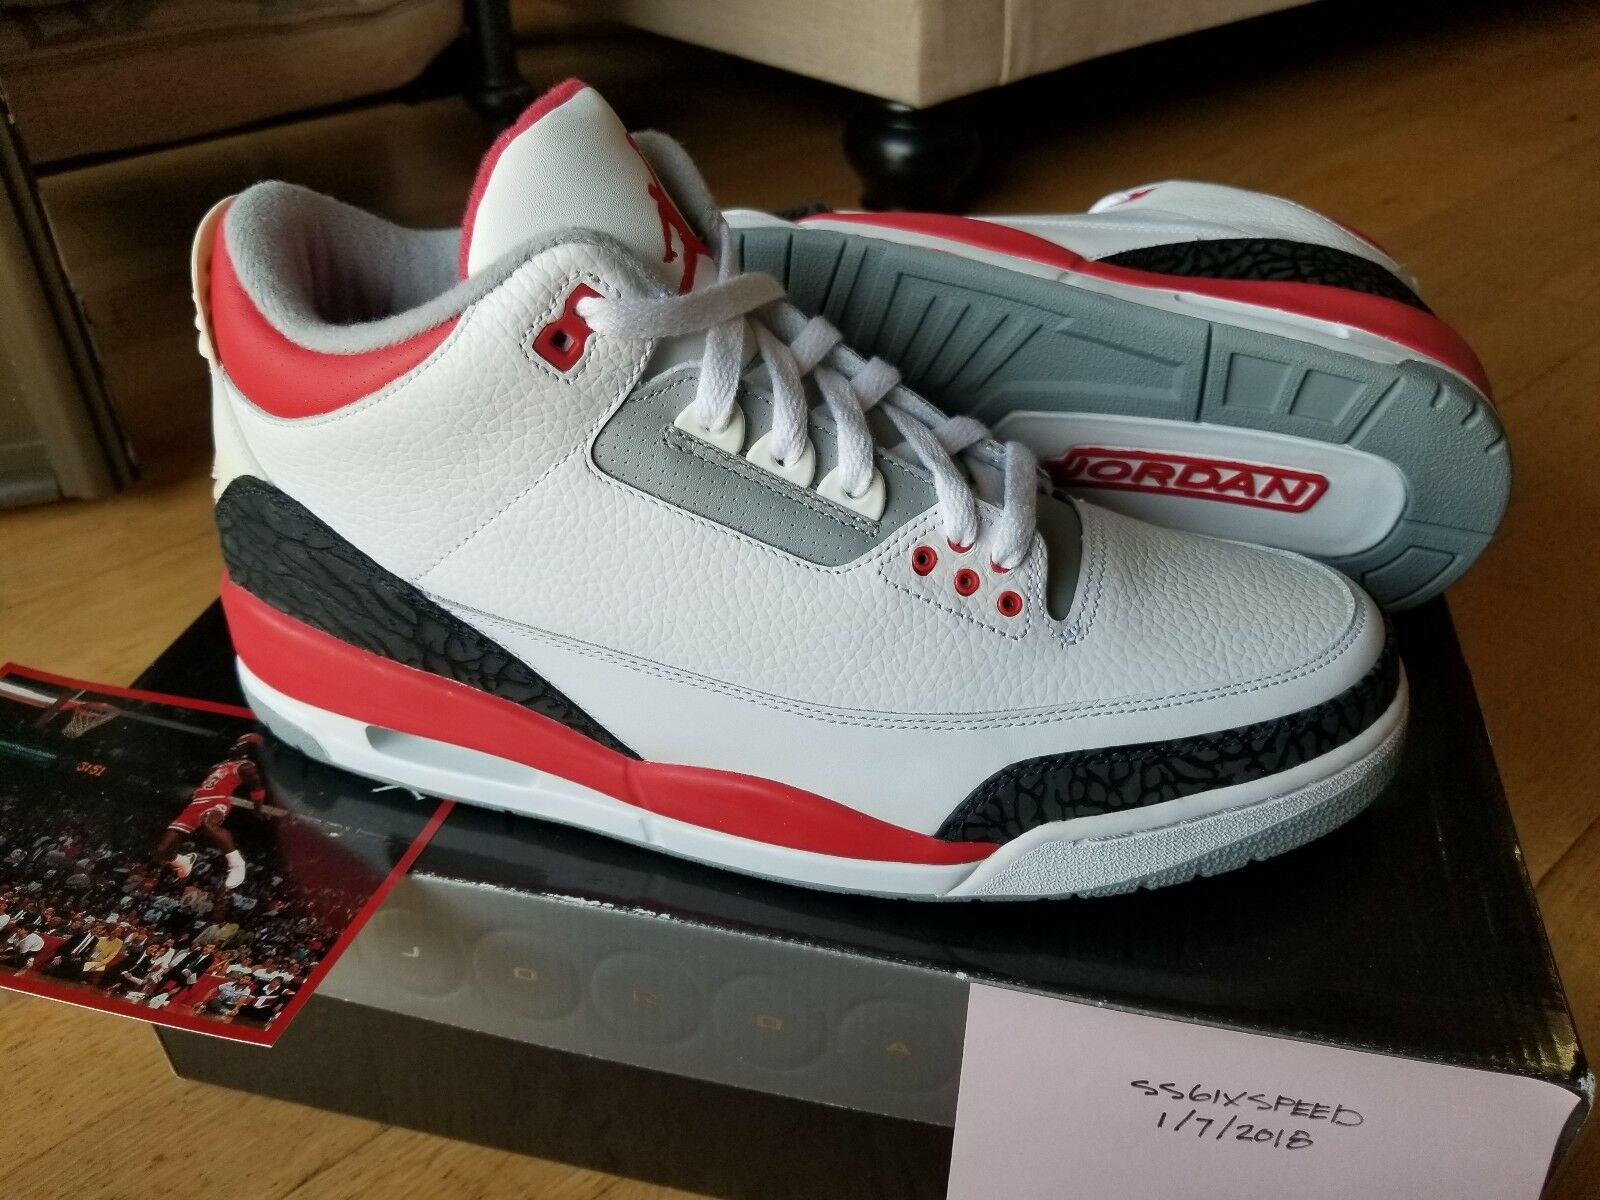 DS 2018 Nike Air Jordan III Fire Red Cement size 12 w/ receipt 3 XI VI IV